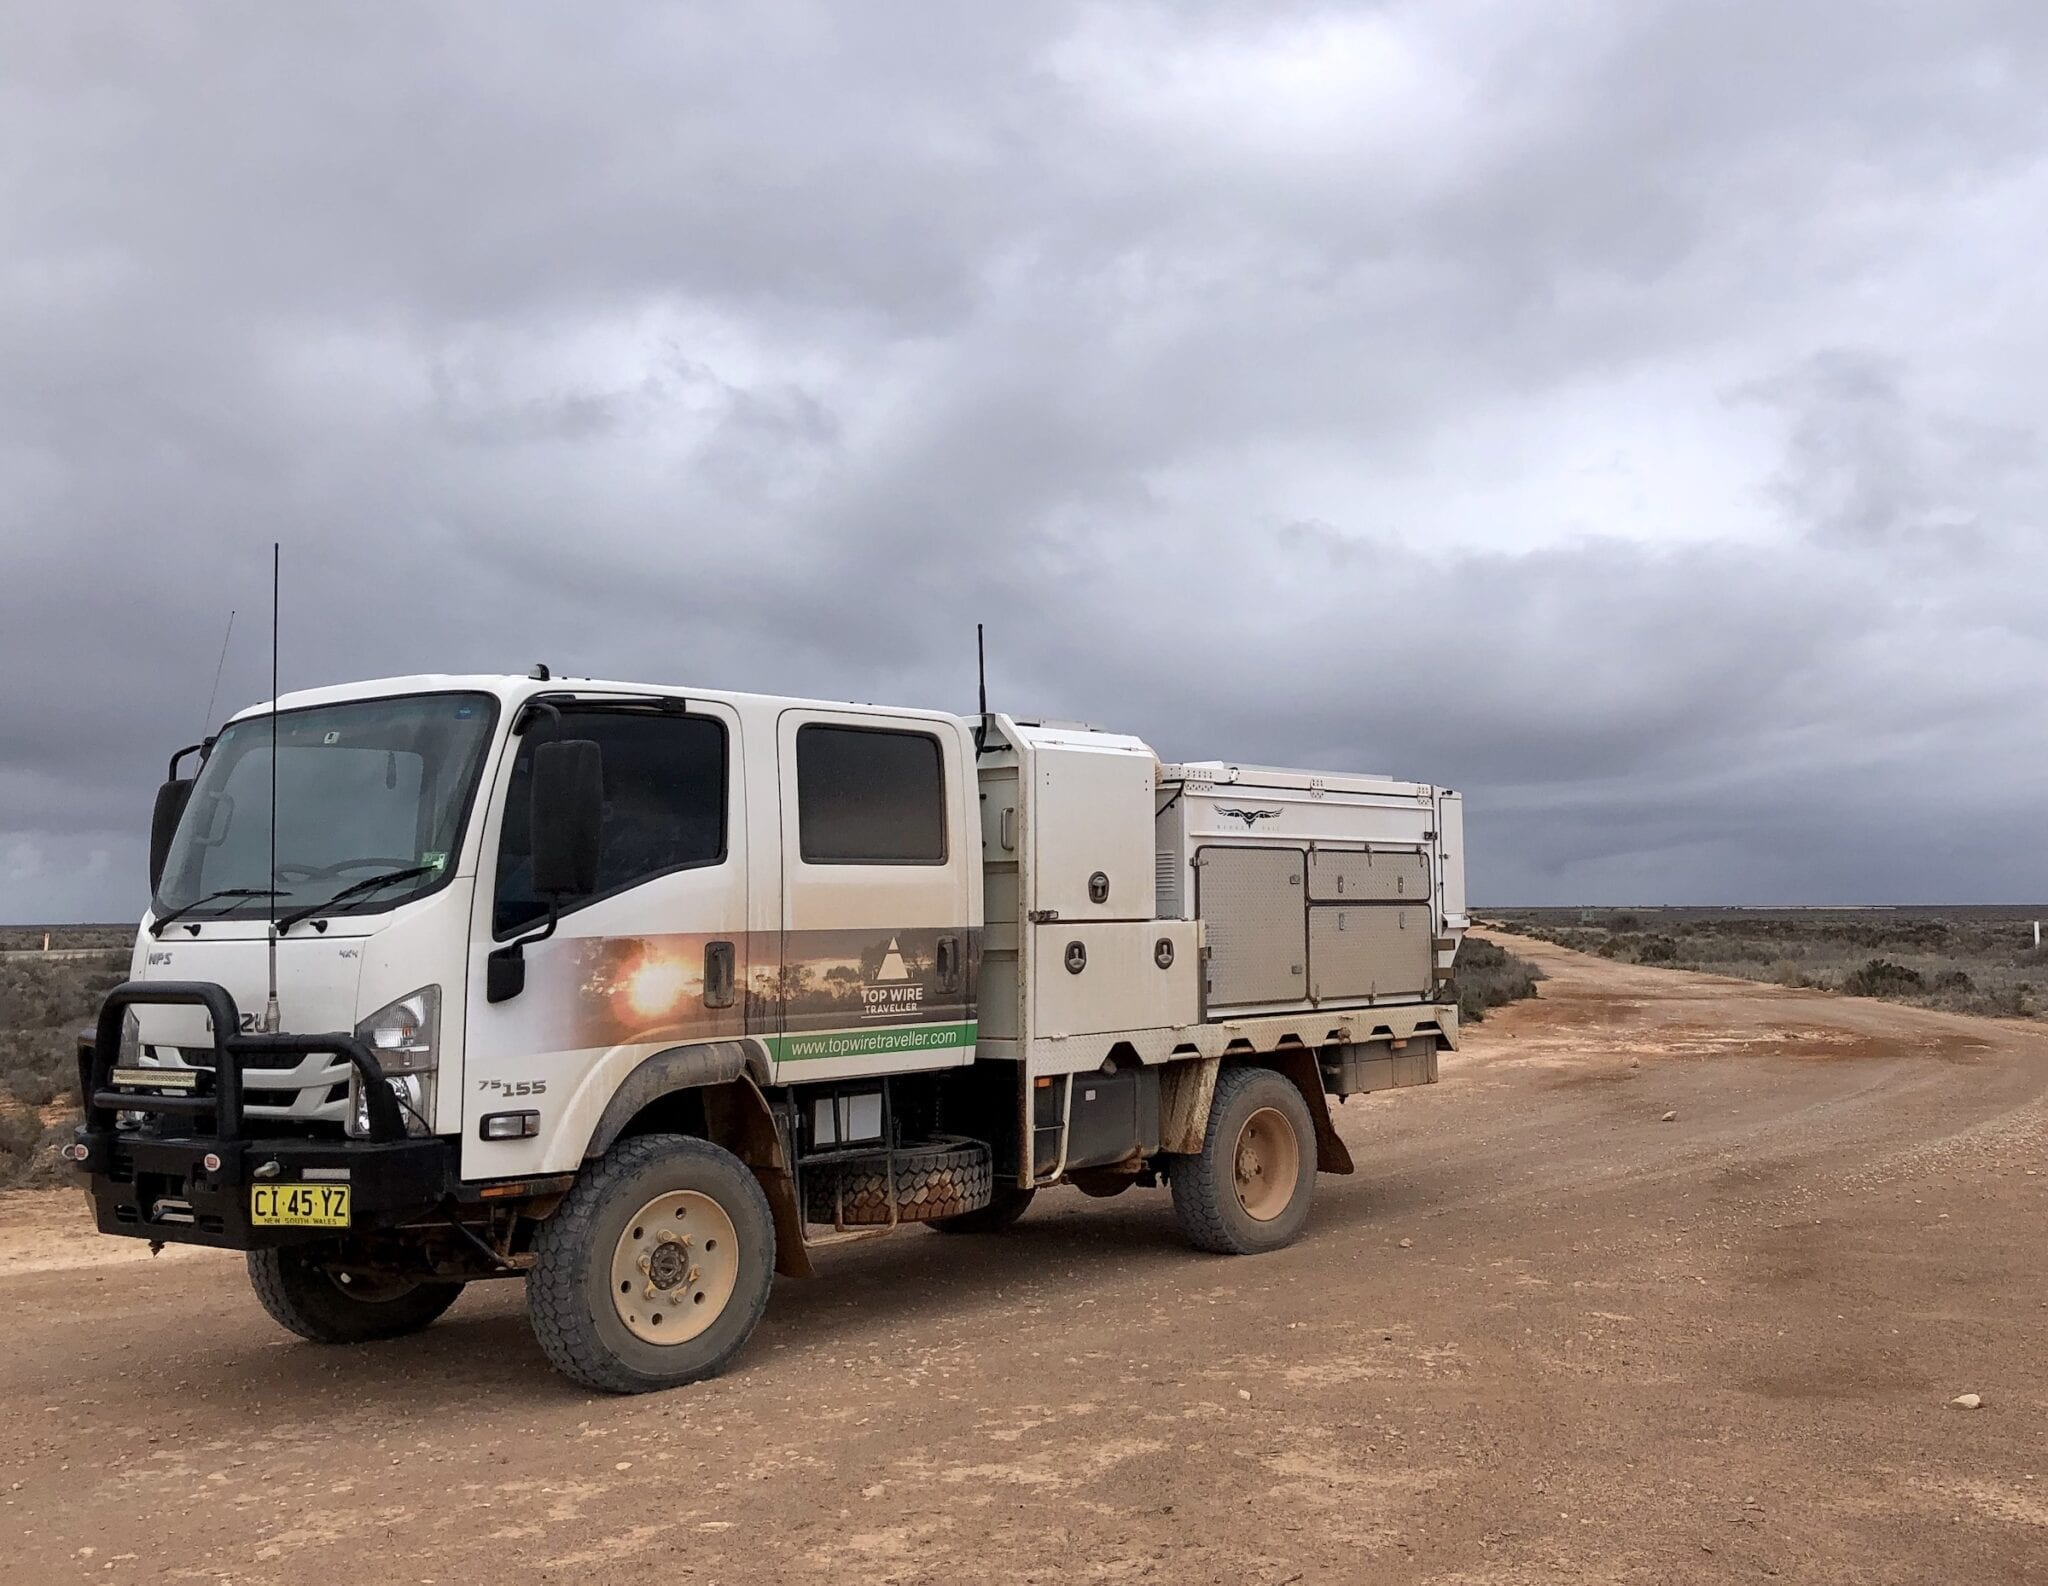 Isuzu 4x4 truck on the Old Eyre Highway, Nullarbor Plain South Australia.